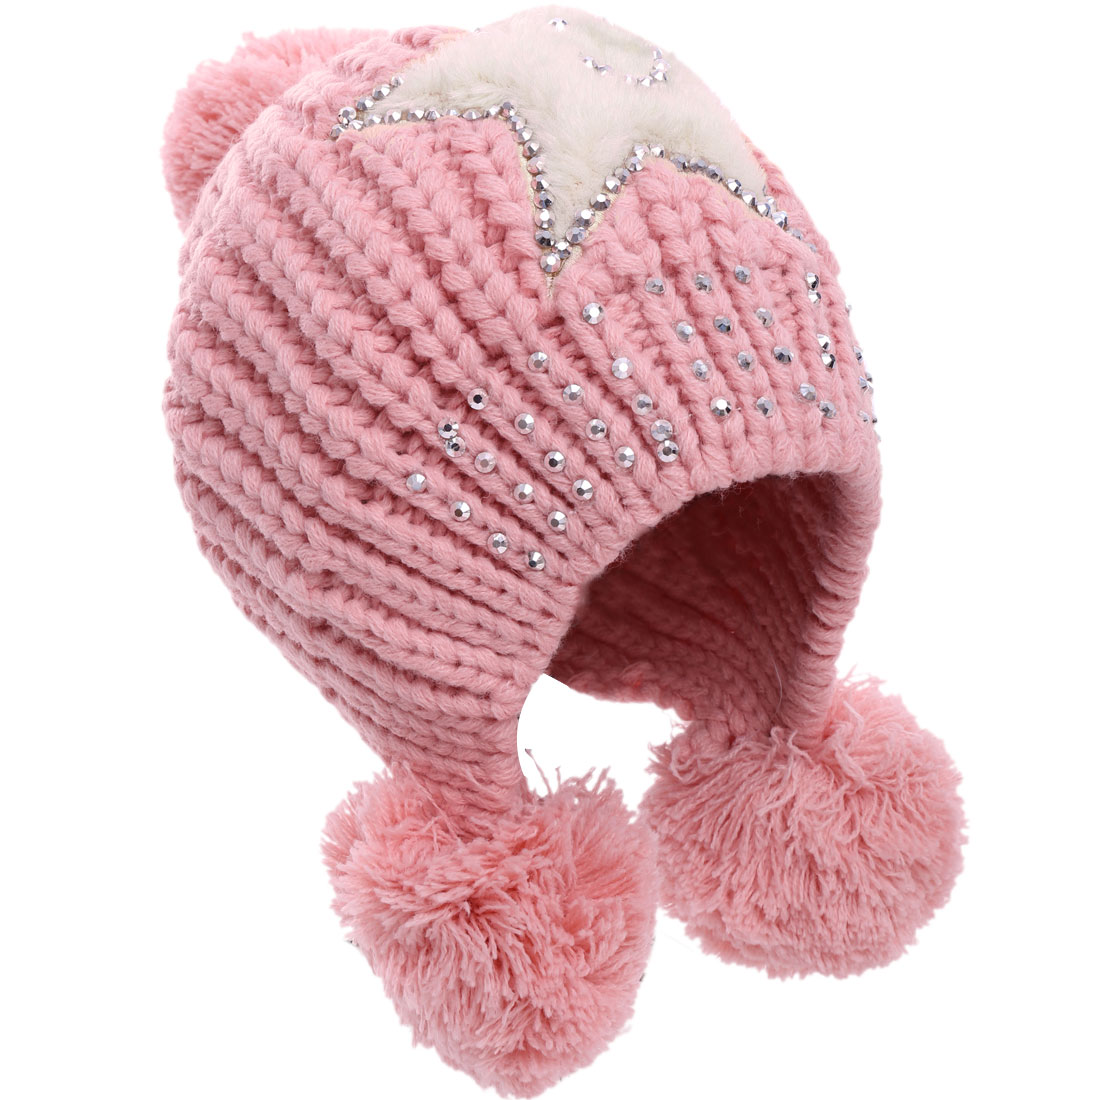 Women's Cute Stars Pattern Studs Decor Pink Pom Pom Knitted Hat